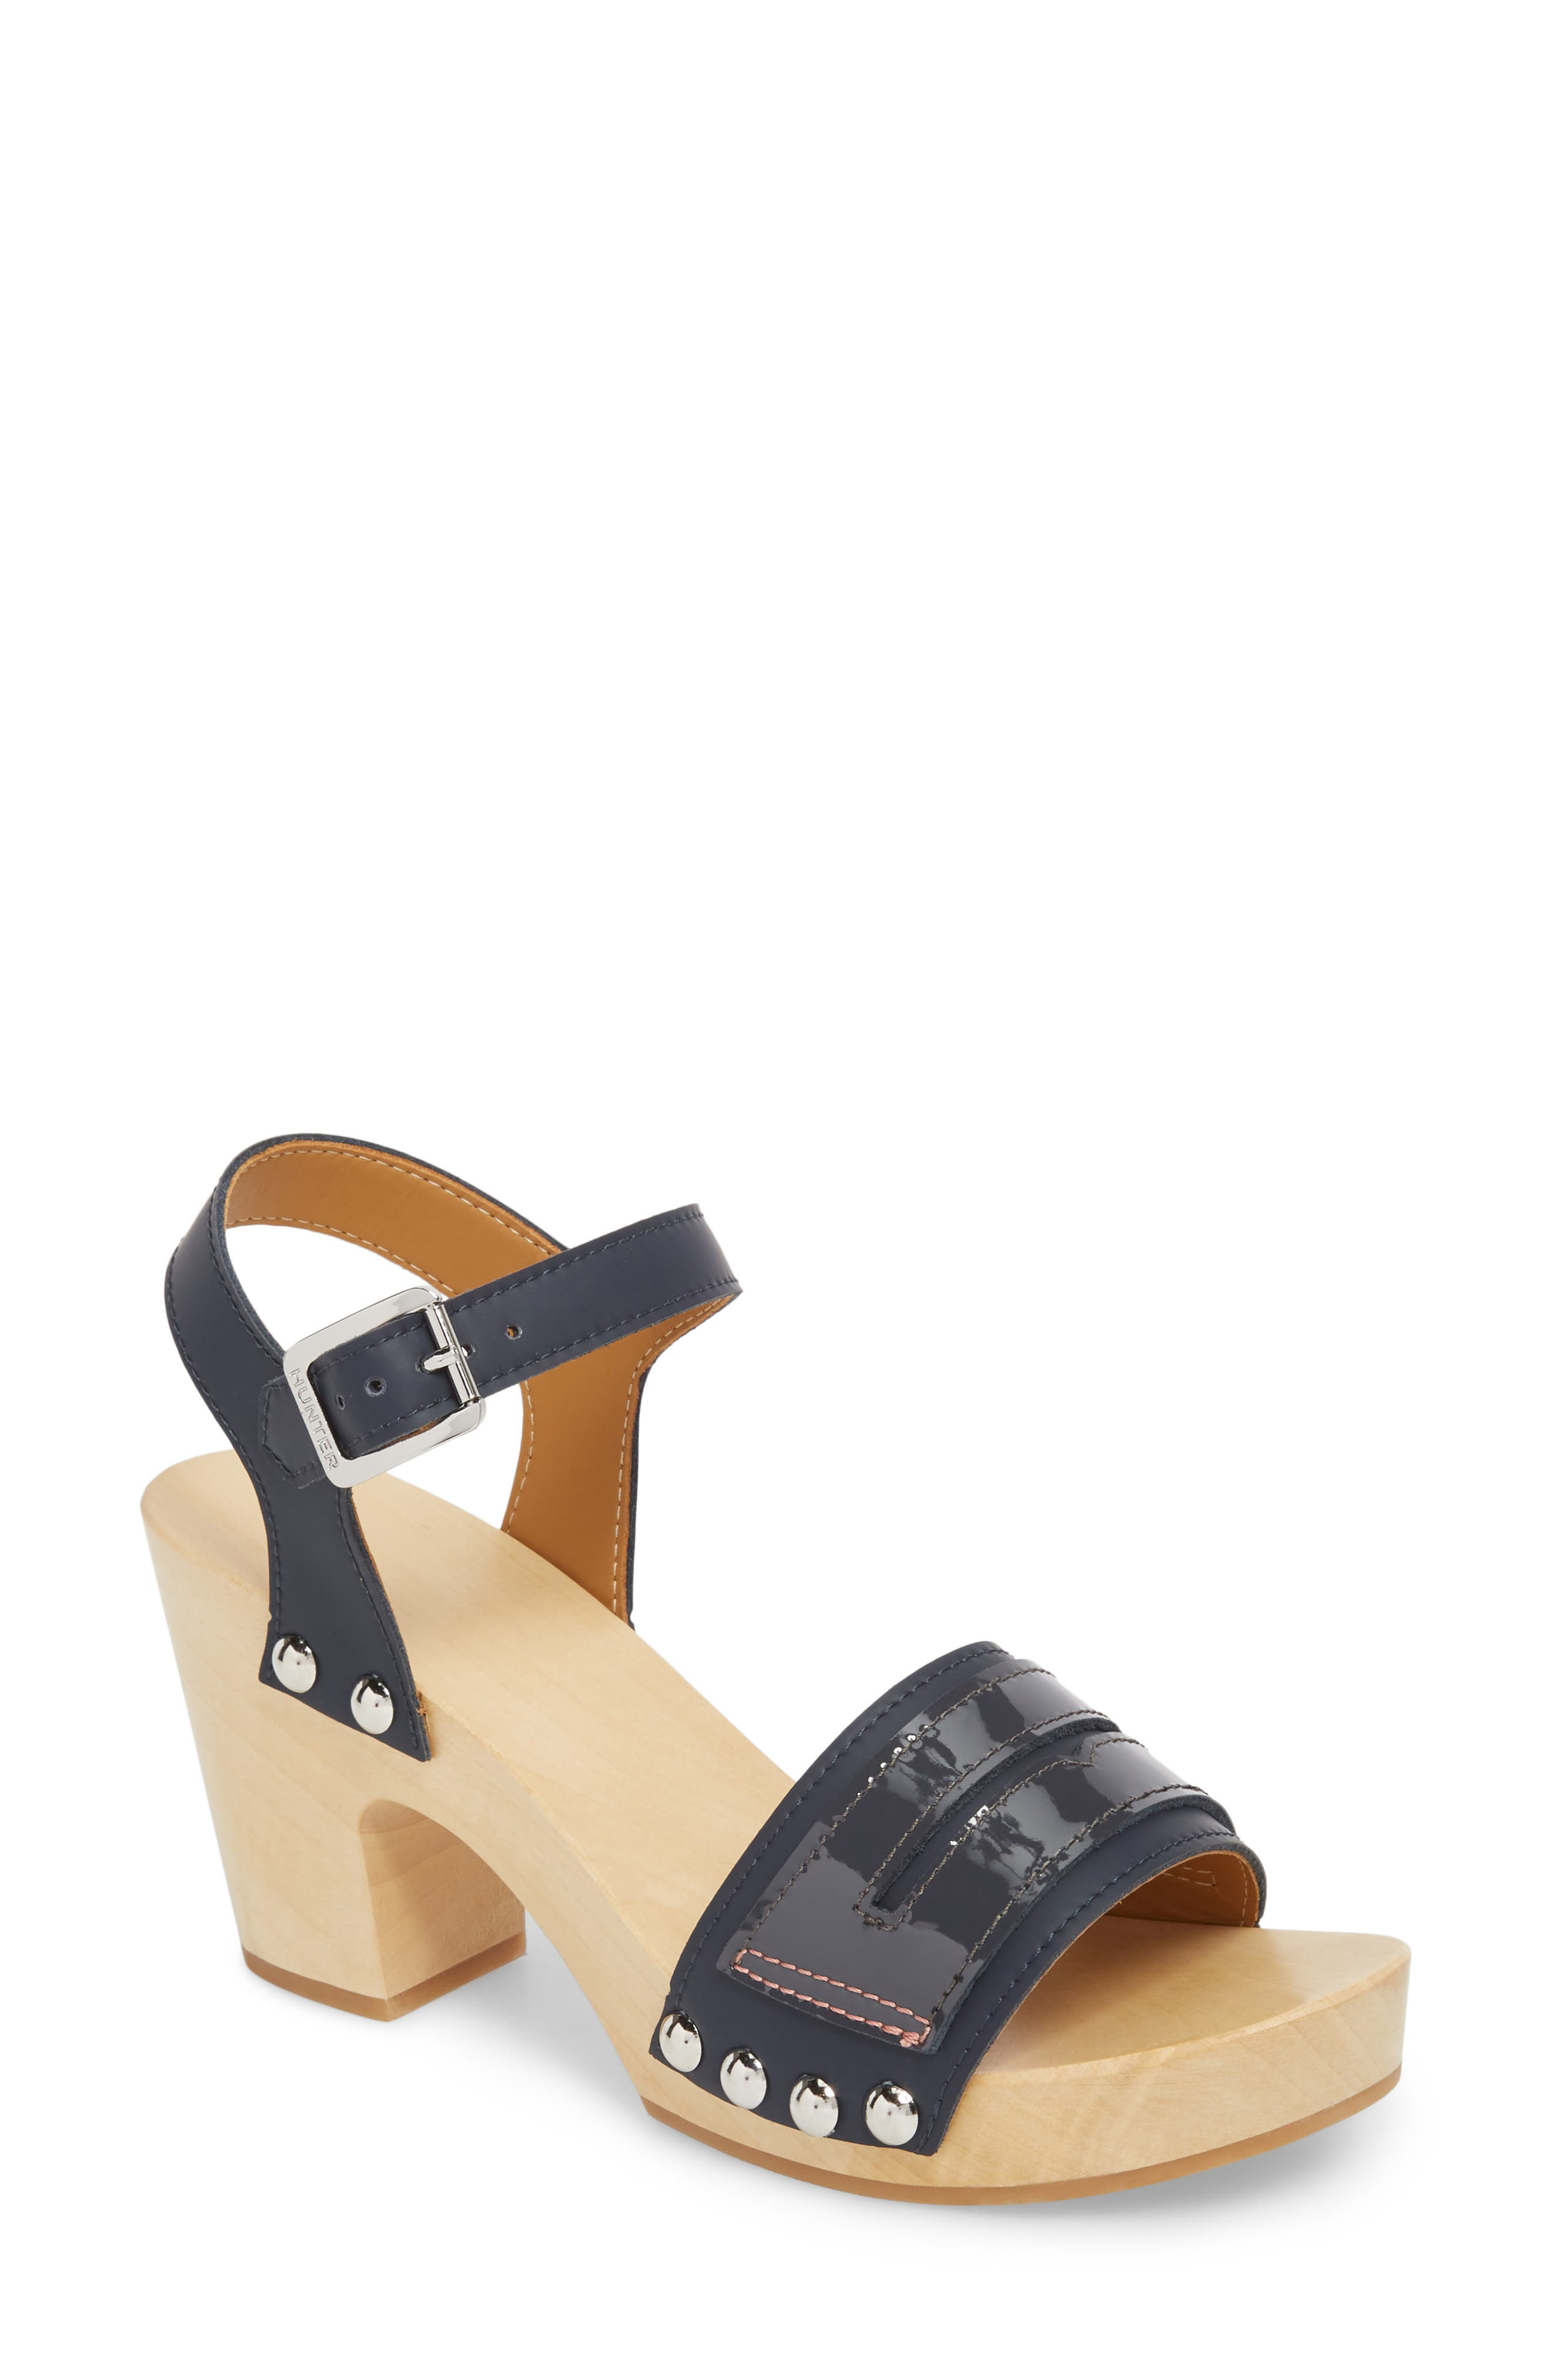 Refined Penny Loafer Clog Sandal,                             Main thumbnail 1, color,                             NAVY